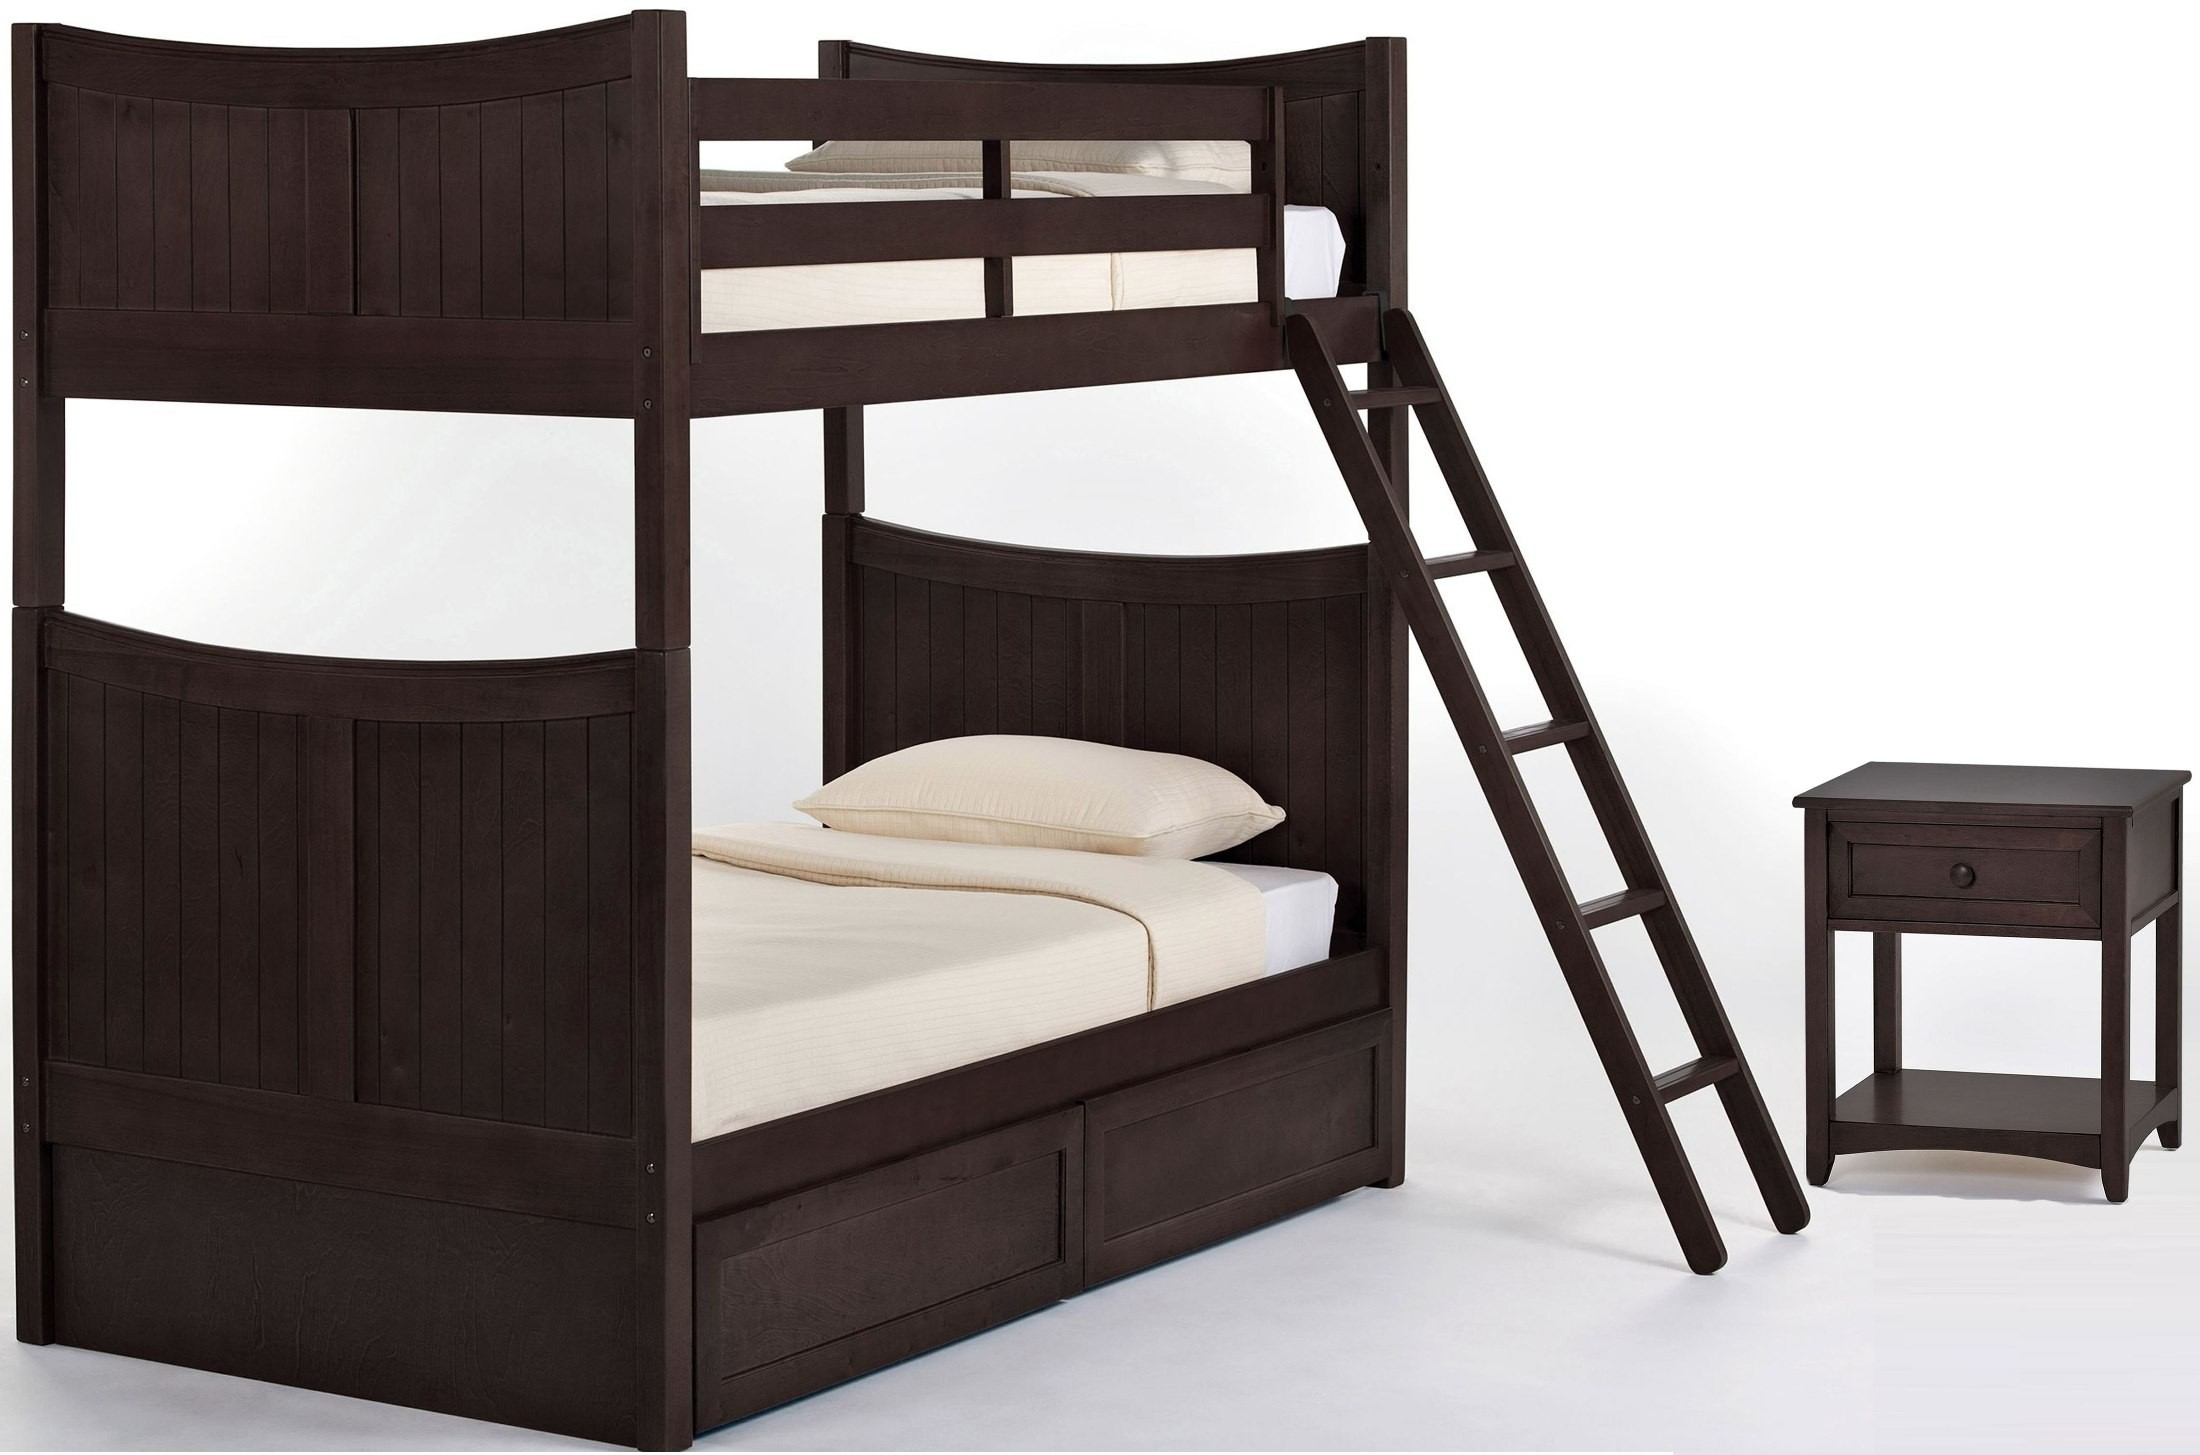 School house chocolate taylor youth bunk bedroom set with for Taylor j bedroom furniture